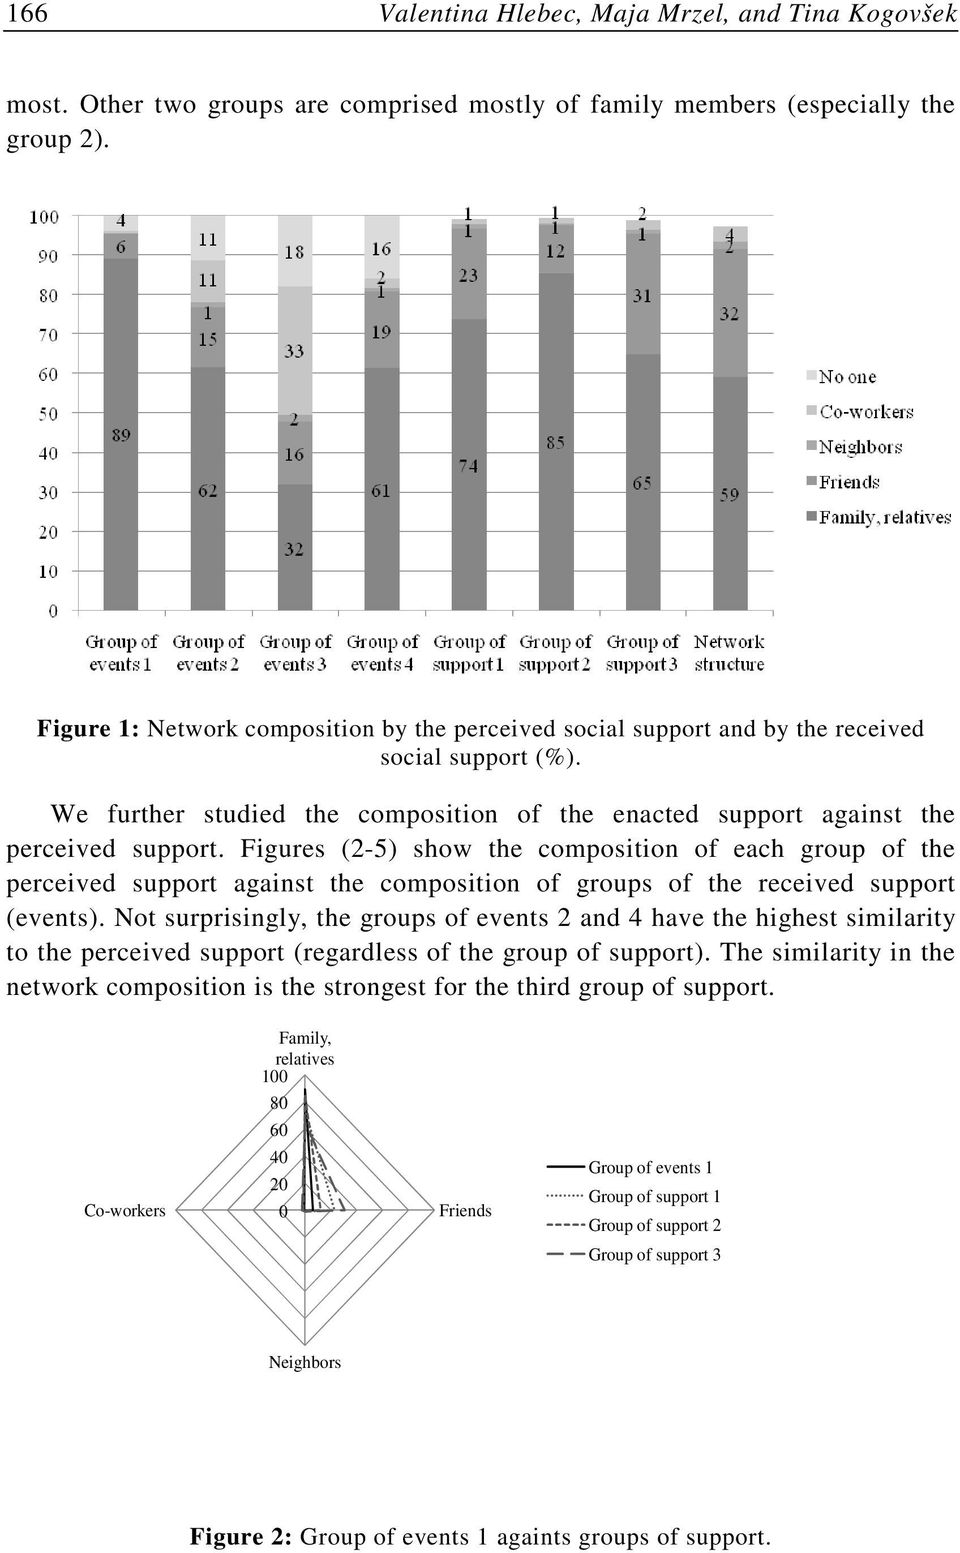 Figures (2-5) show the composition of each group of the perceived support against the composition of groups of the received support (events).